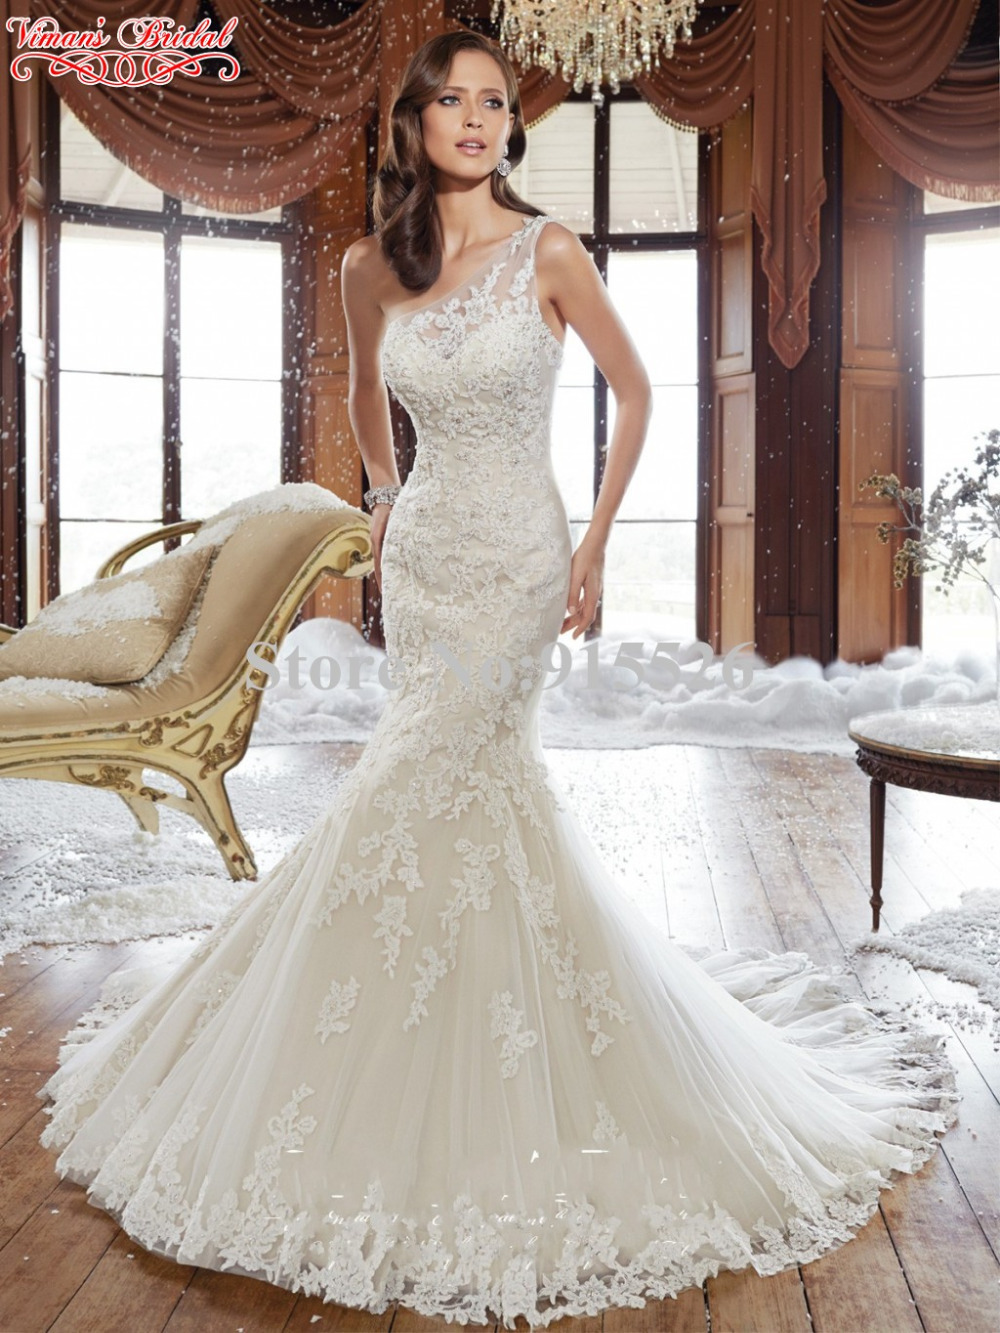 score a free wedding dress free wedding dress Enter to Win Free Weddings Honeymoons and More with These Contests